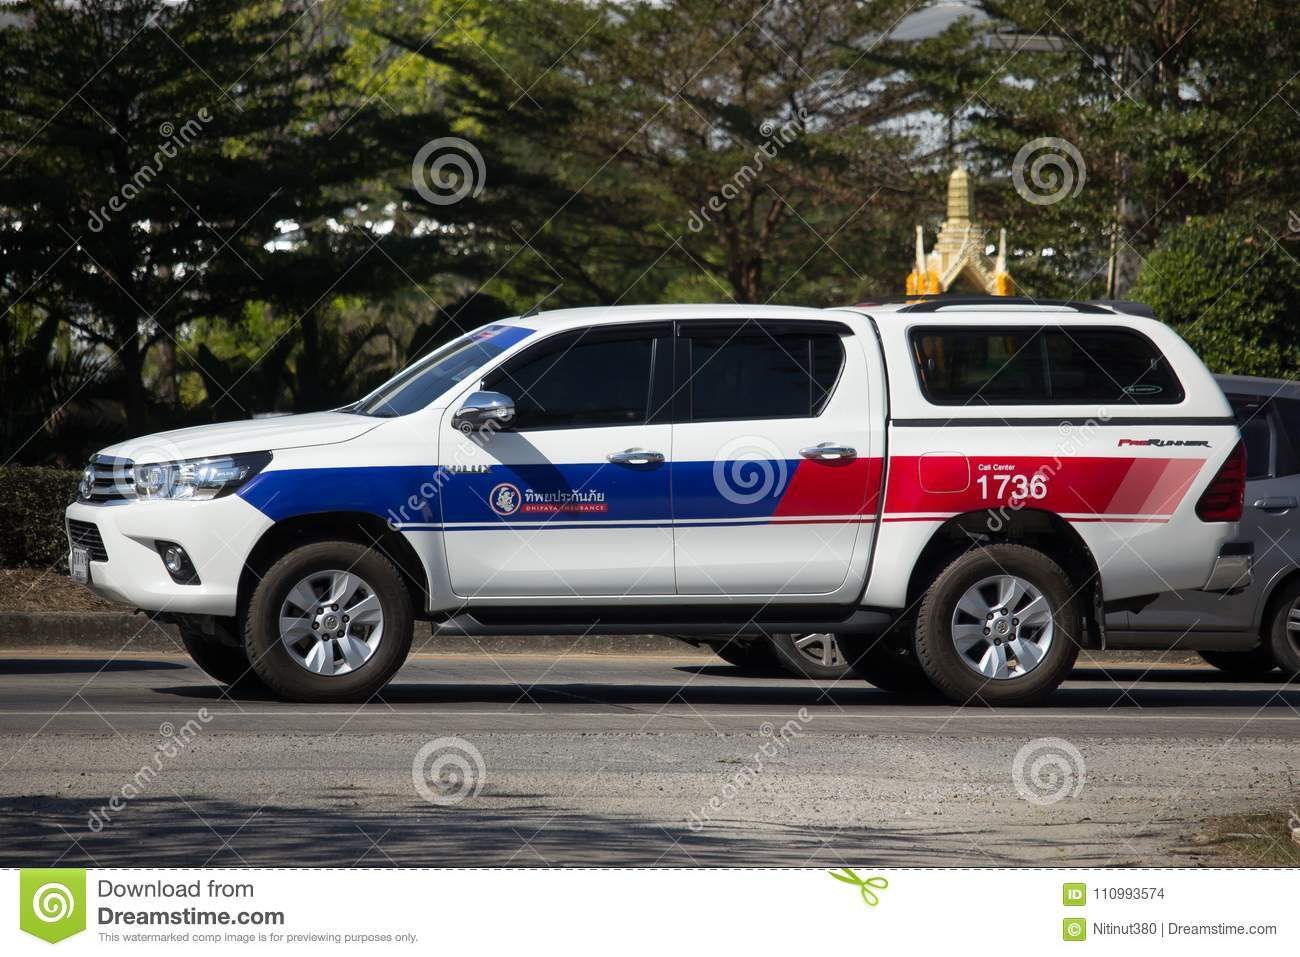 Pickup Truck Car Toyota Hilux Revo Of Dhiphaya Insurance Editorial